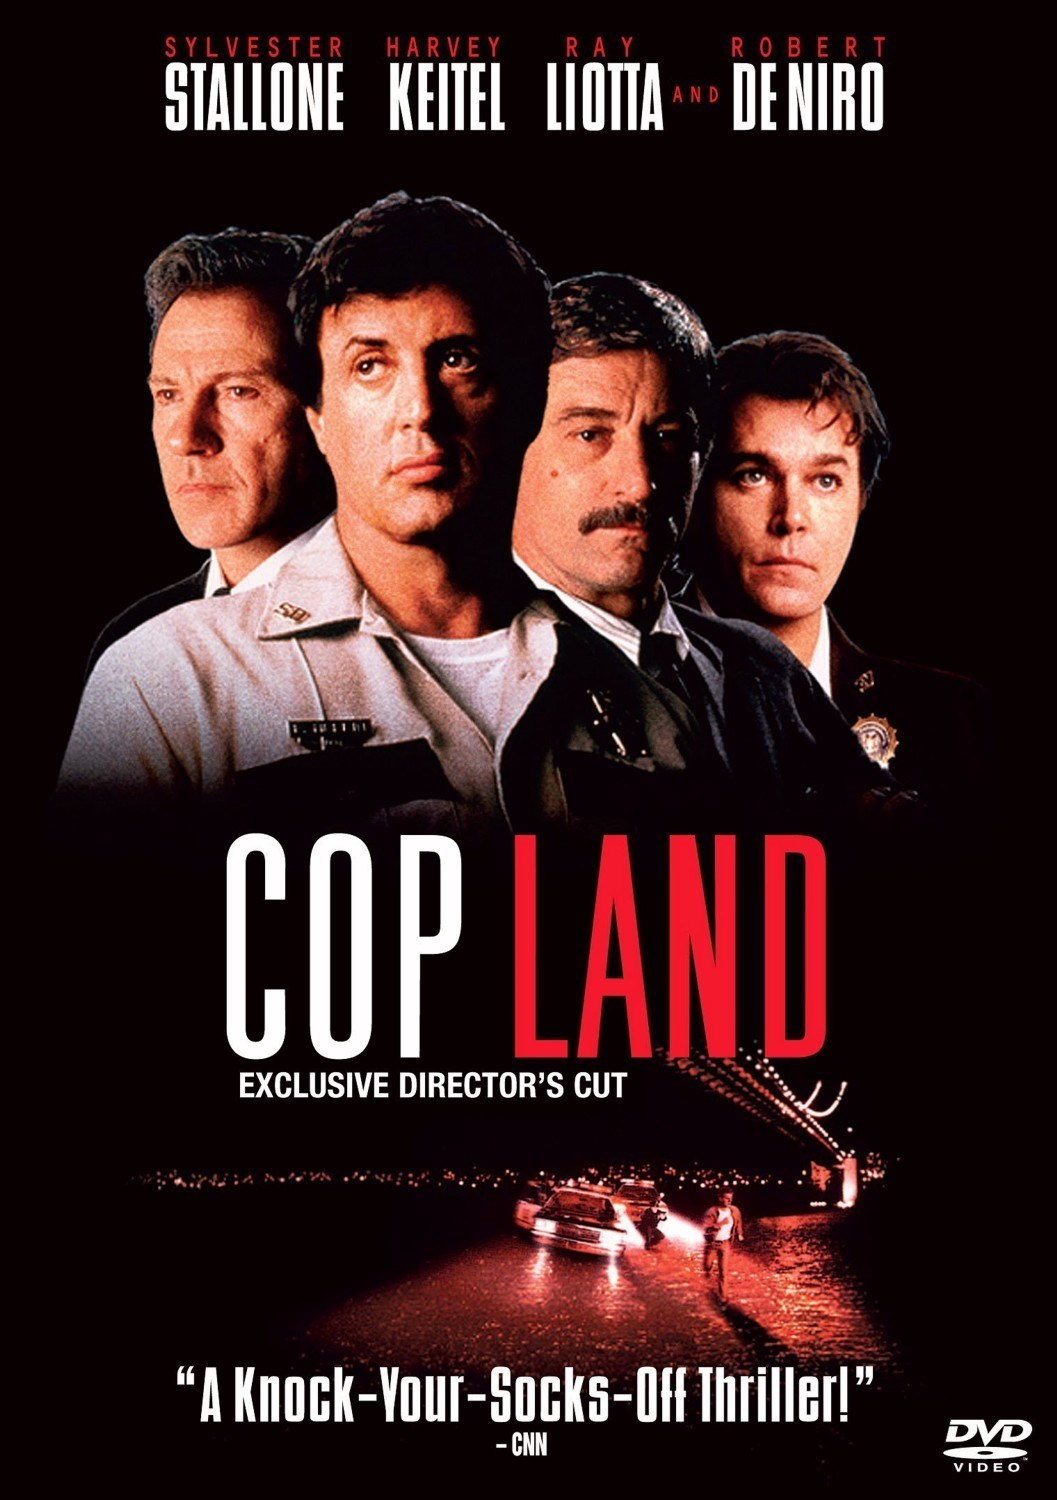 a movie review on cop land directed by james mangold Movie reviews indie movie director james mangold and co-writer scott frank are joining having written and directed cop land back when he was starting out in.